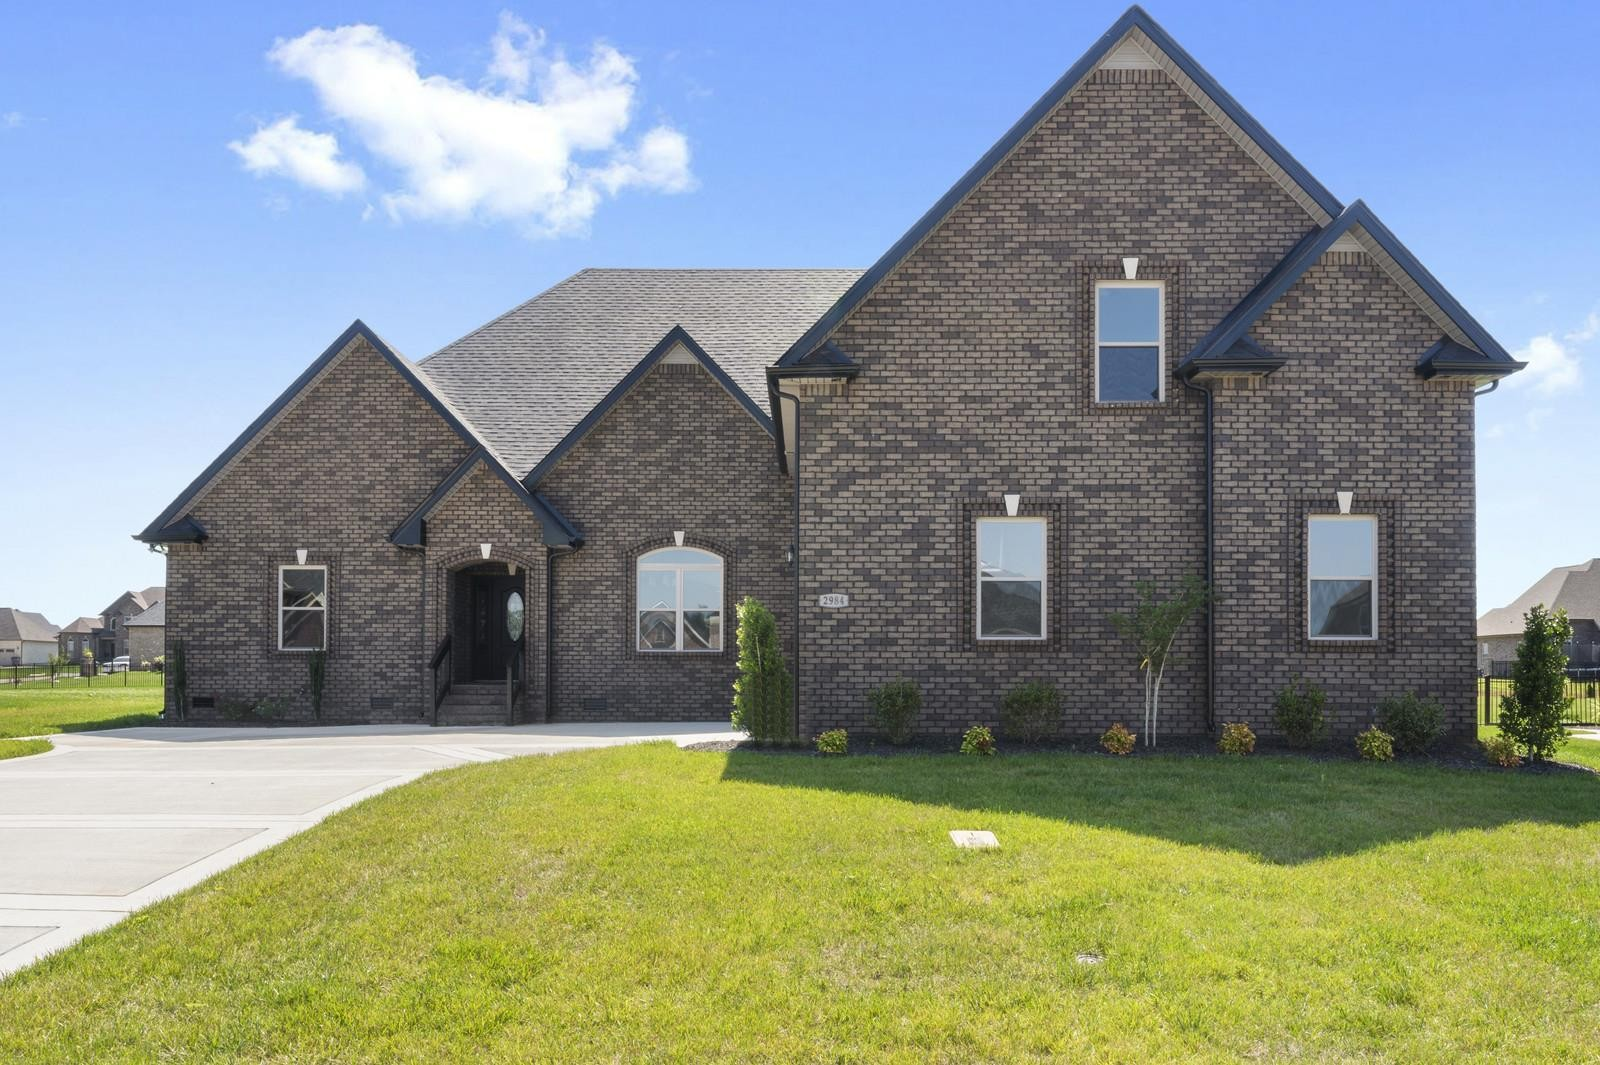 49 Hartley Hills Property Photo - Clarksville, TN real estate listing